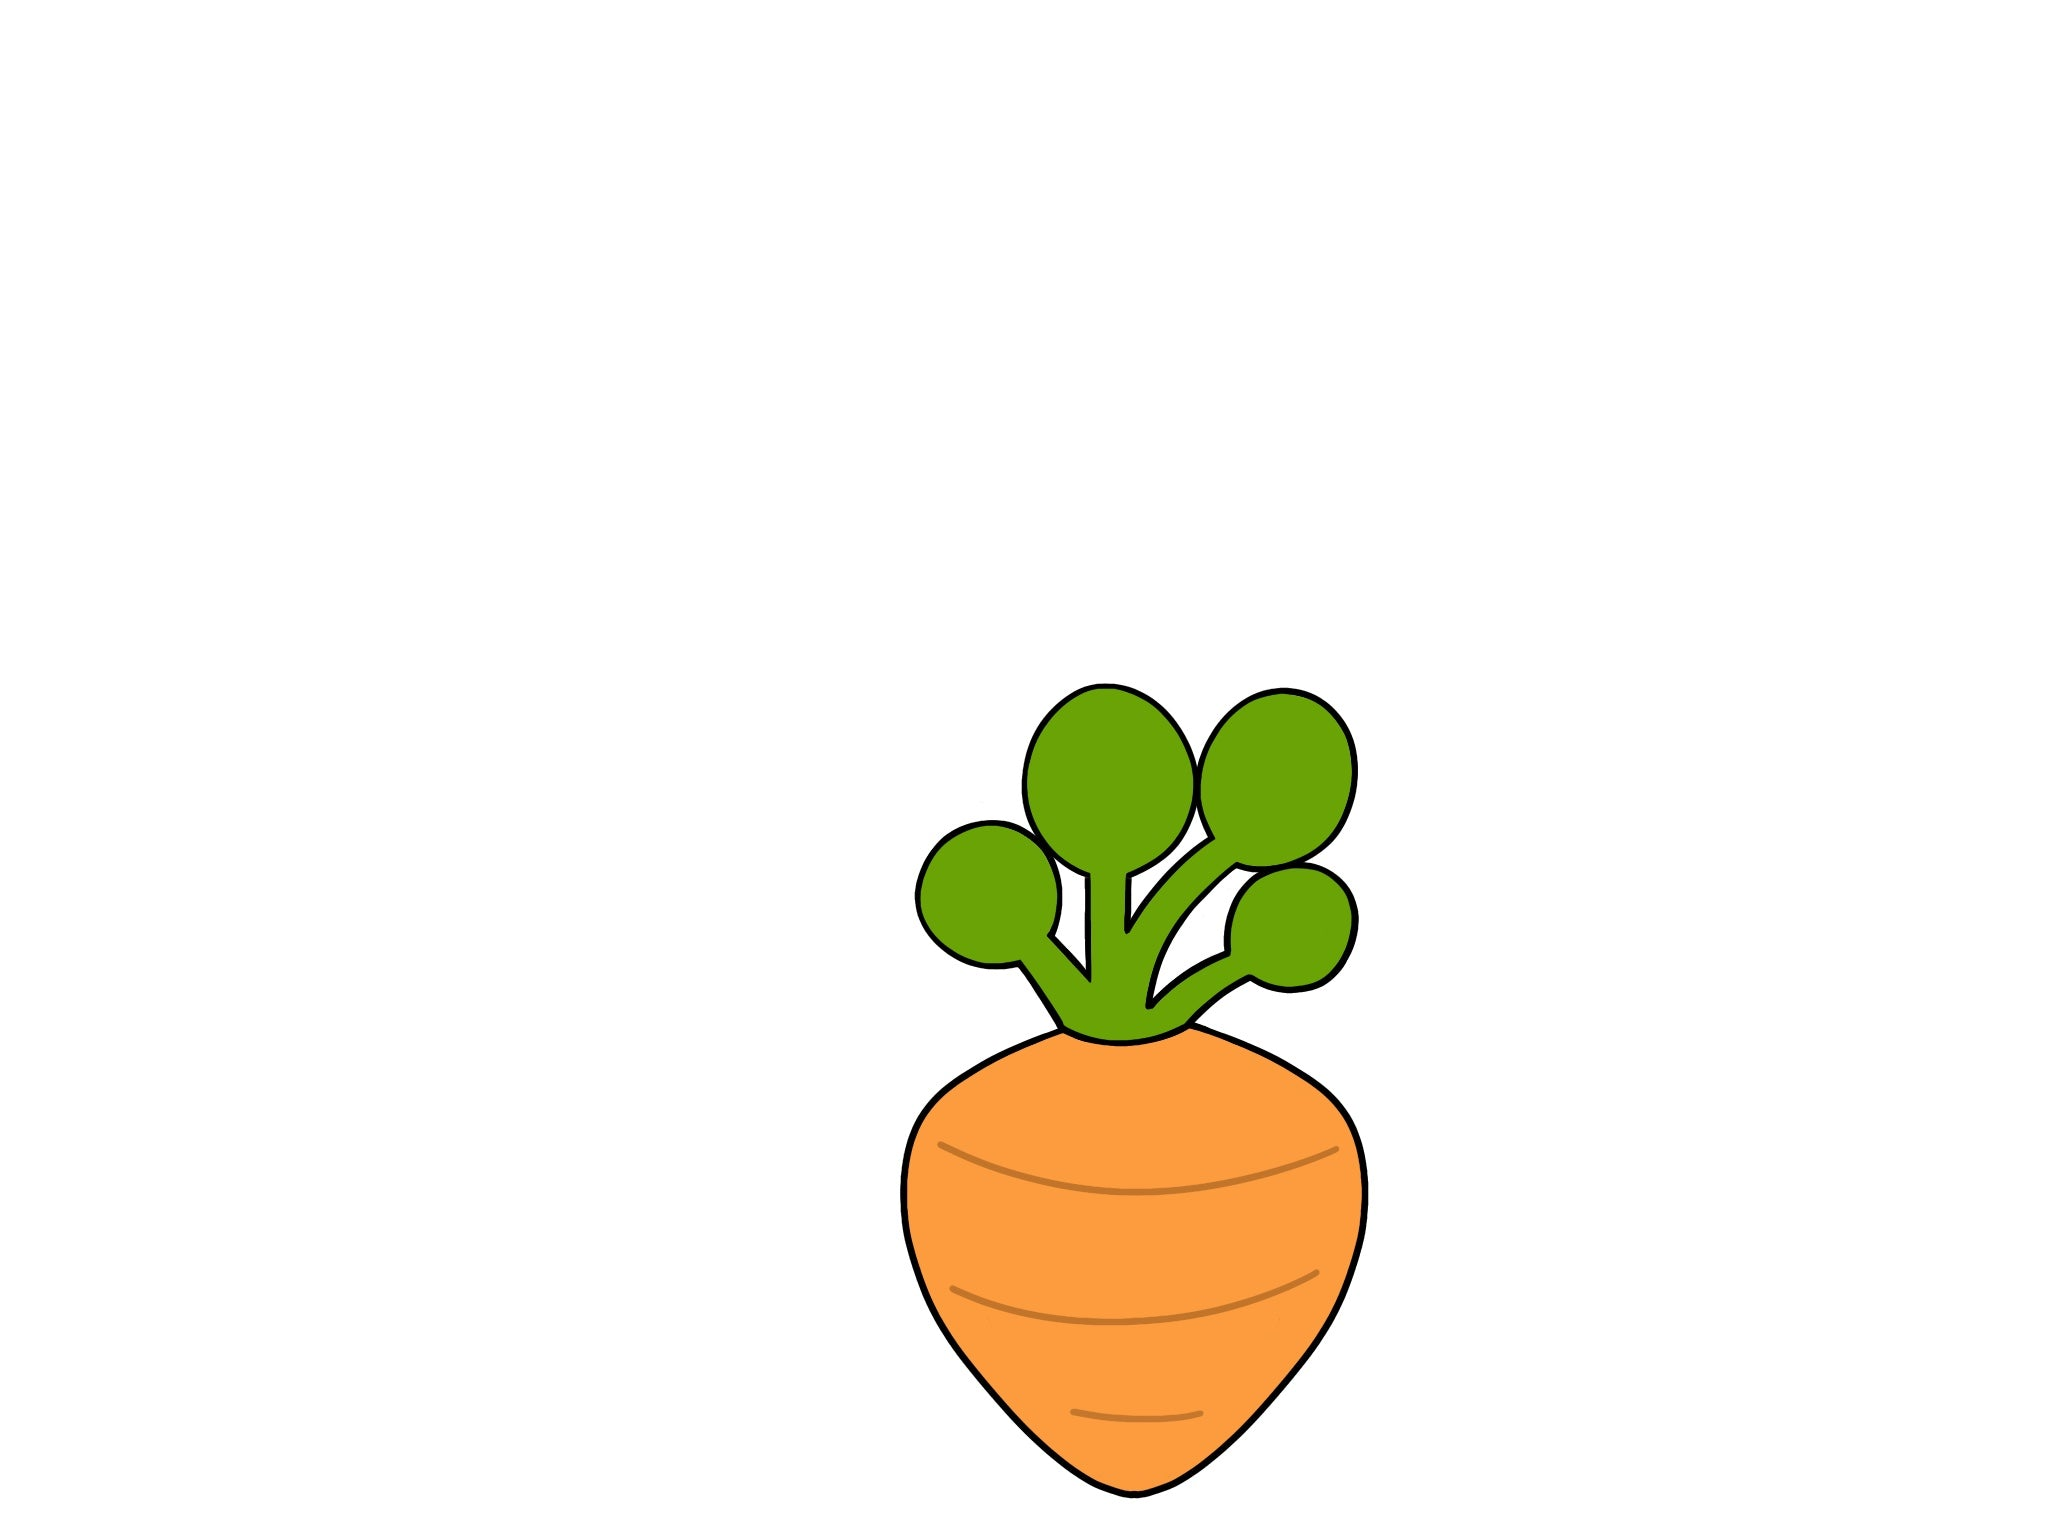 Chubby Carrot - Rounded Leaves